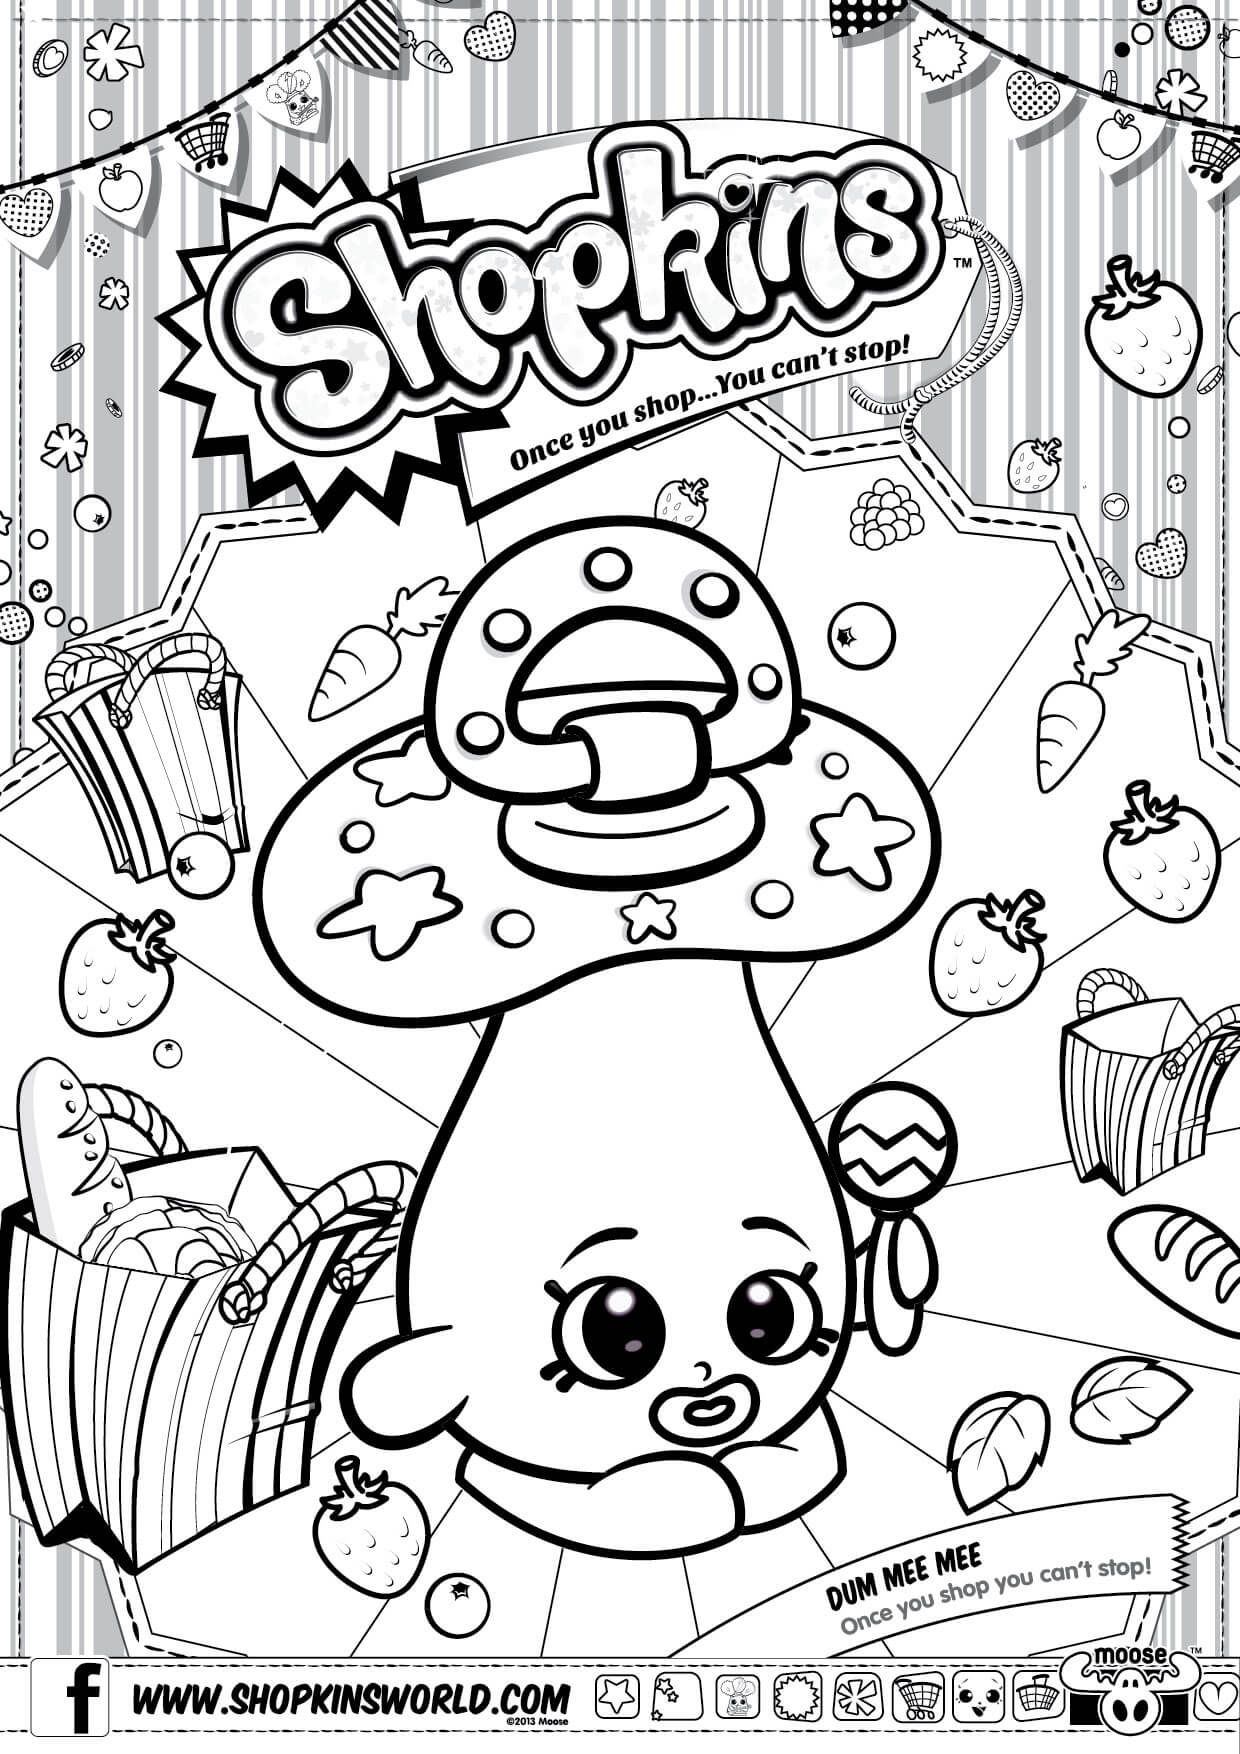 Shopkins coloring pages season 3 - Shopkins Coloring Page Shopkins Seasonprintable